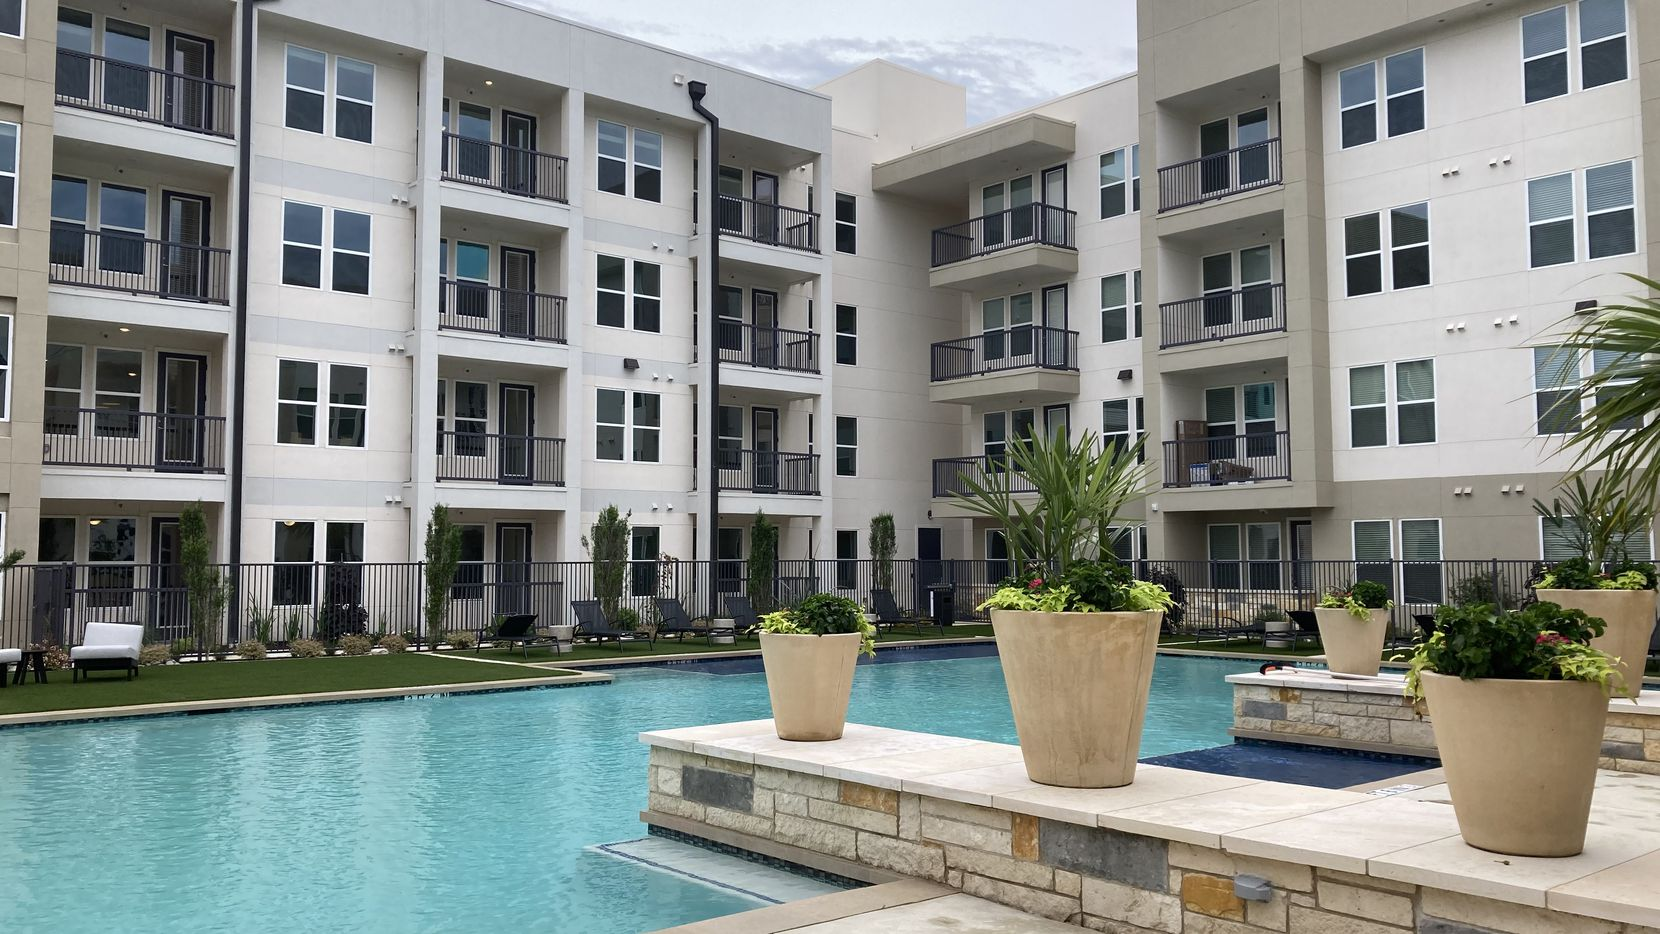 Carbon Cos. just opened its new Latitude apartments in Plano. The developer has built almost 16,000 rental units in the last three decades.